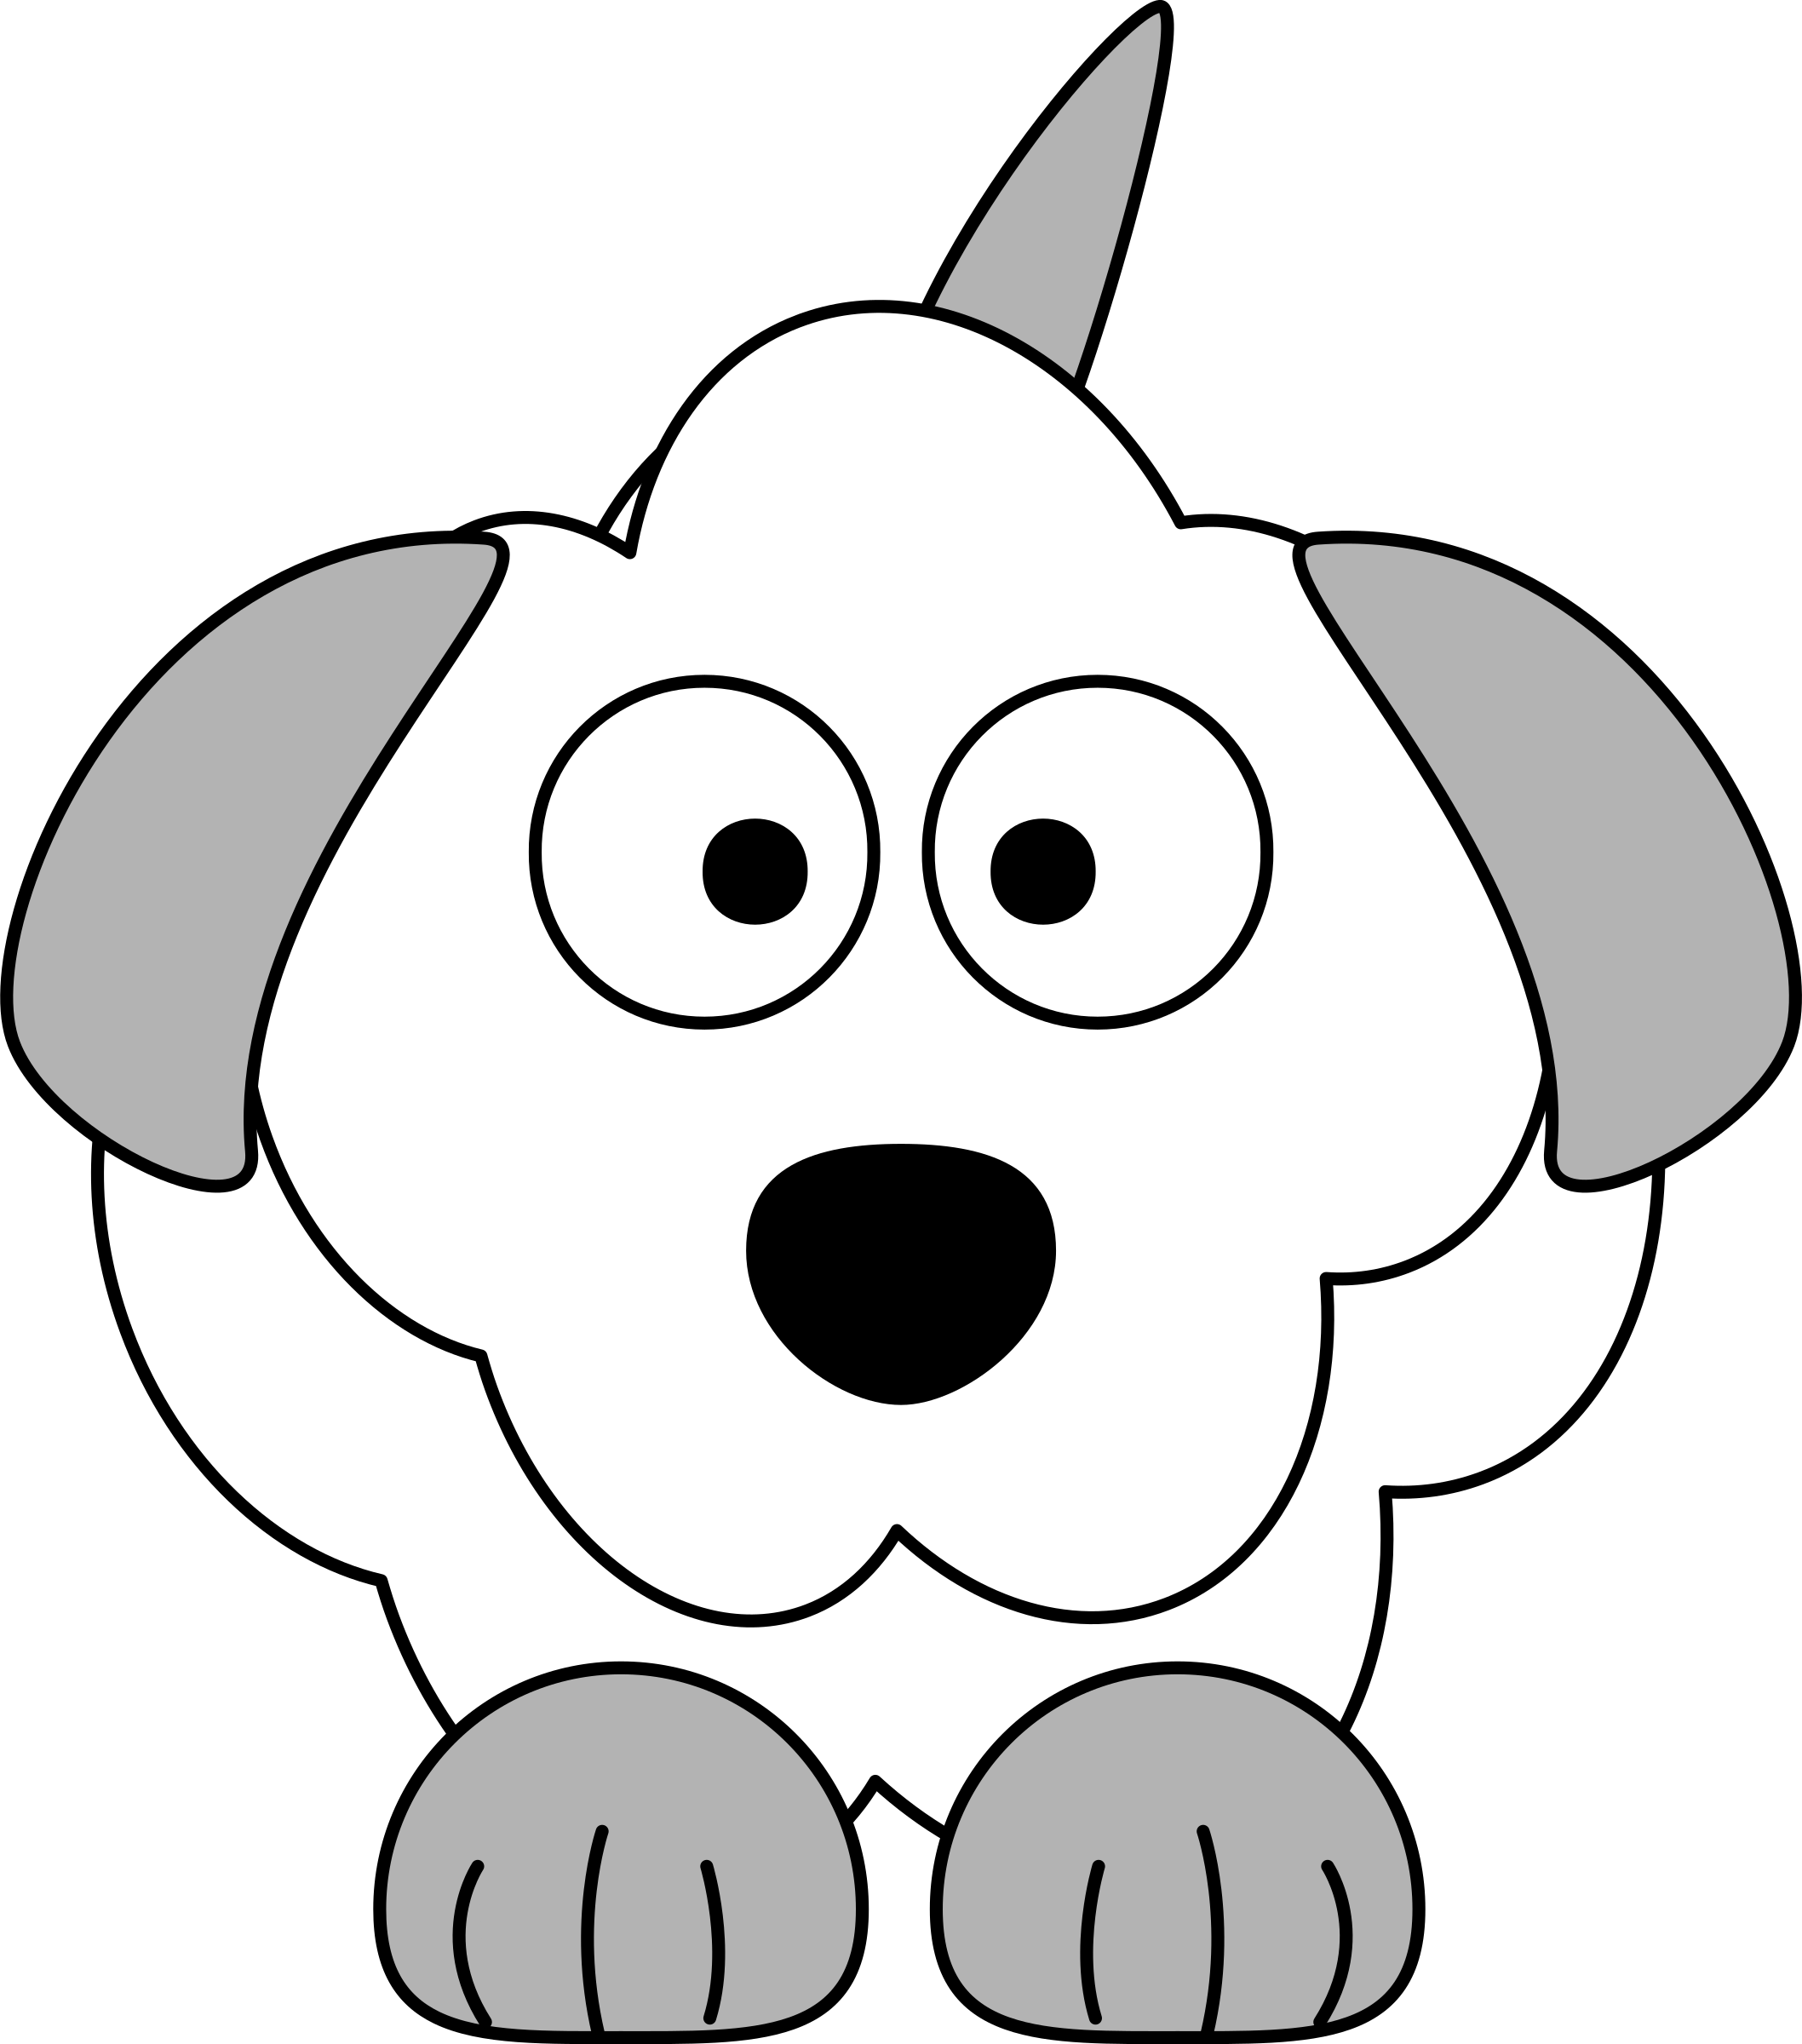 Cartoon dog clipart image free library Black And White Dog Cartoon Group (39+) image free library